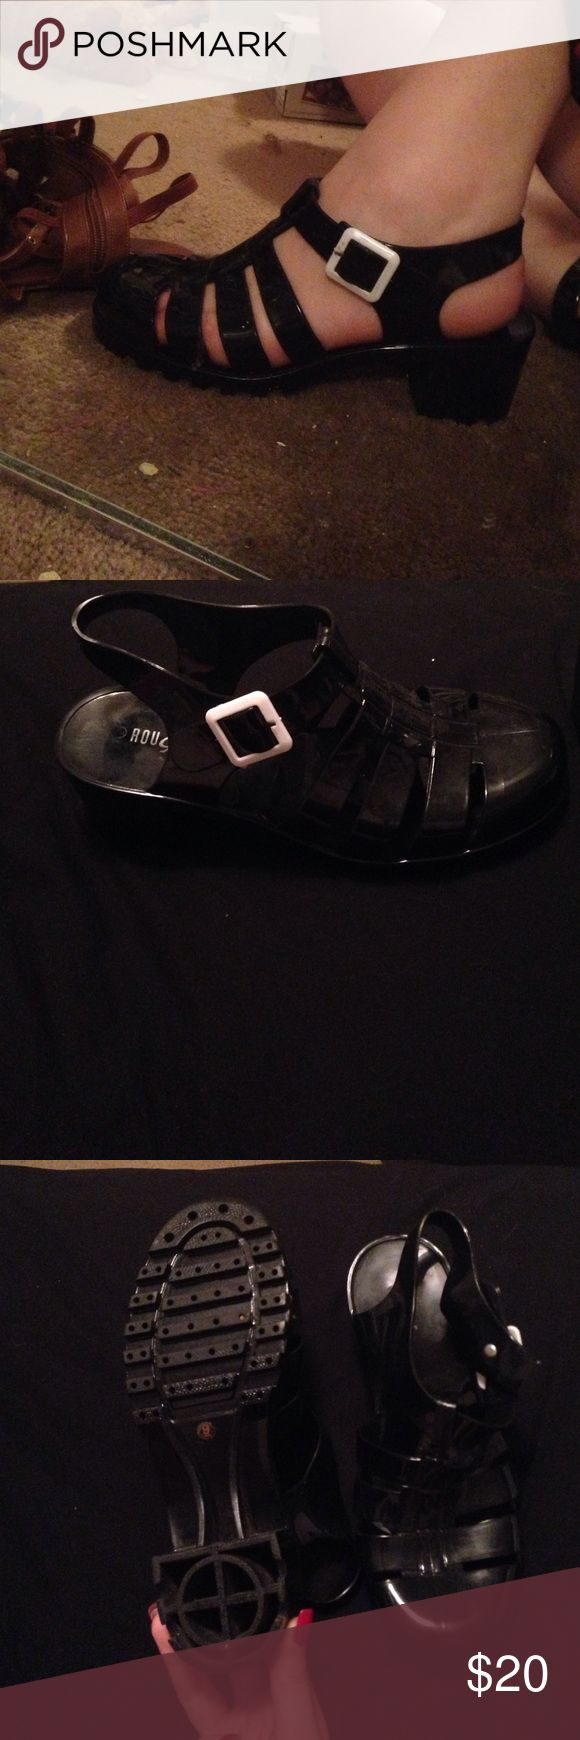 Black jelly sandals american apparel - Black Jelly Shoes Never Worn